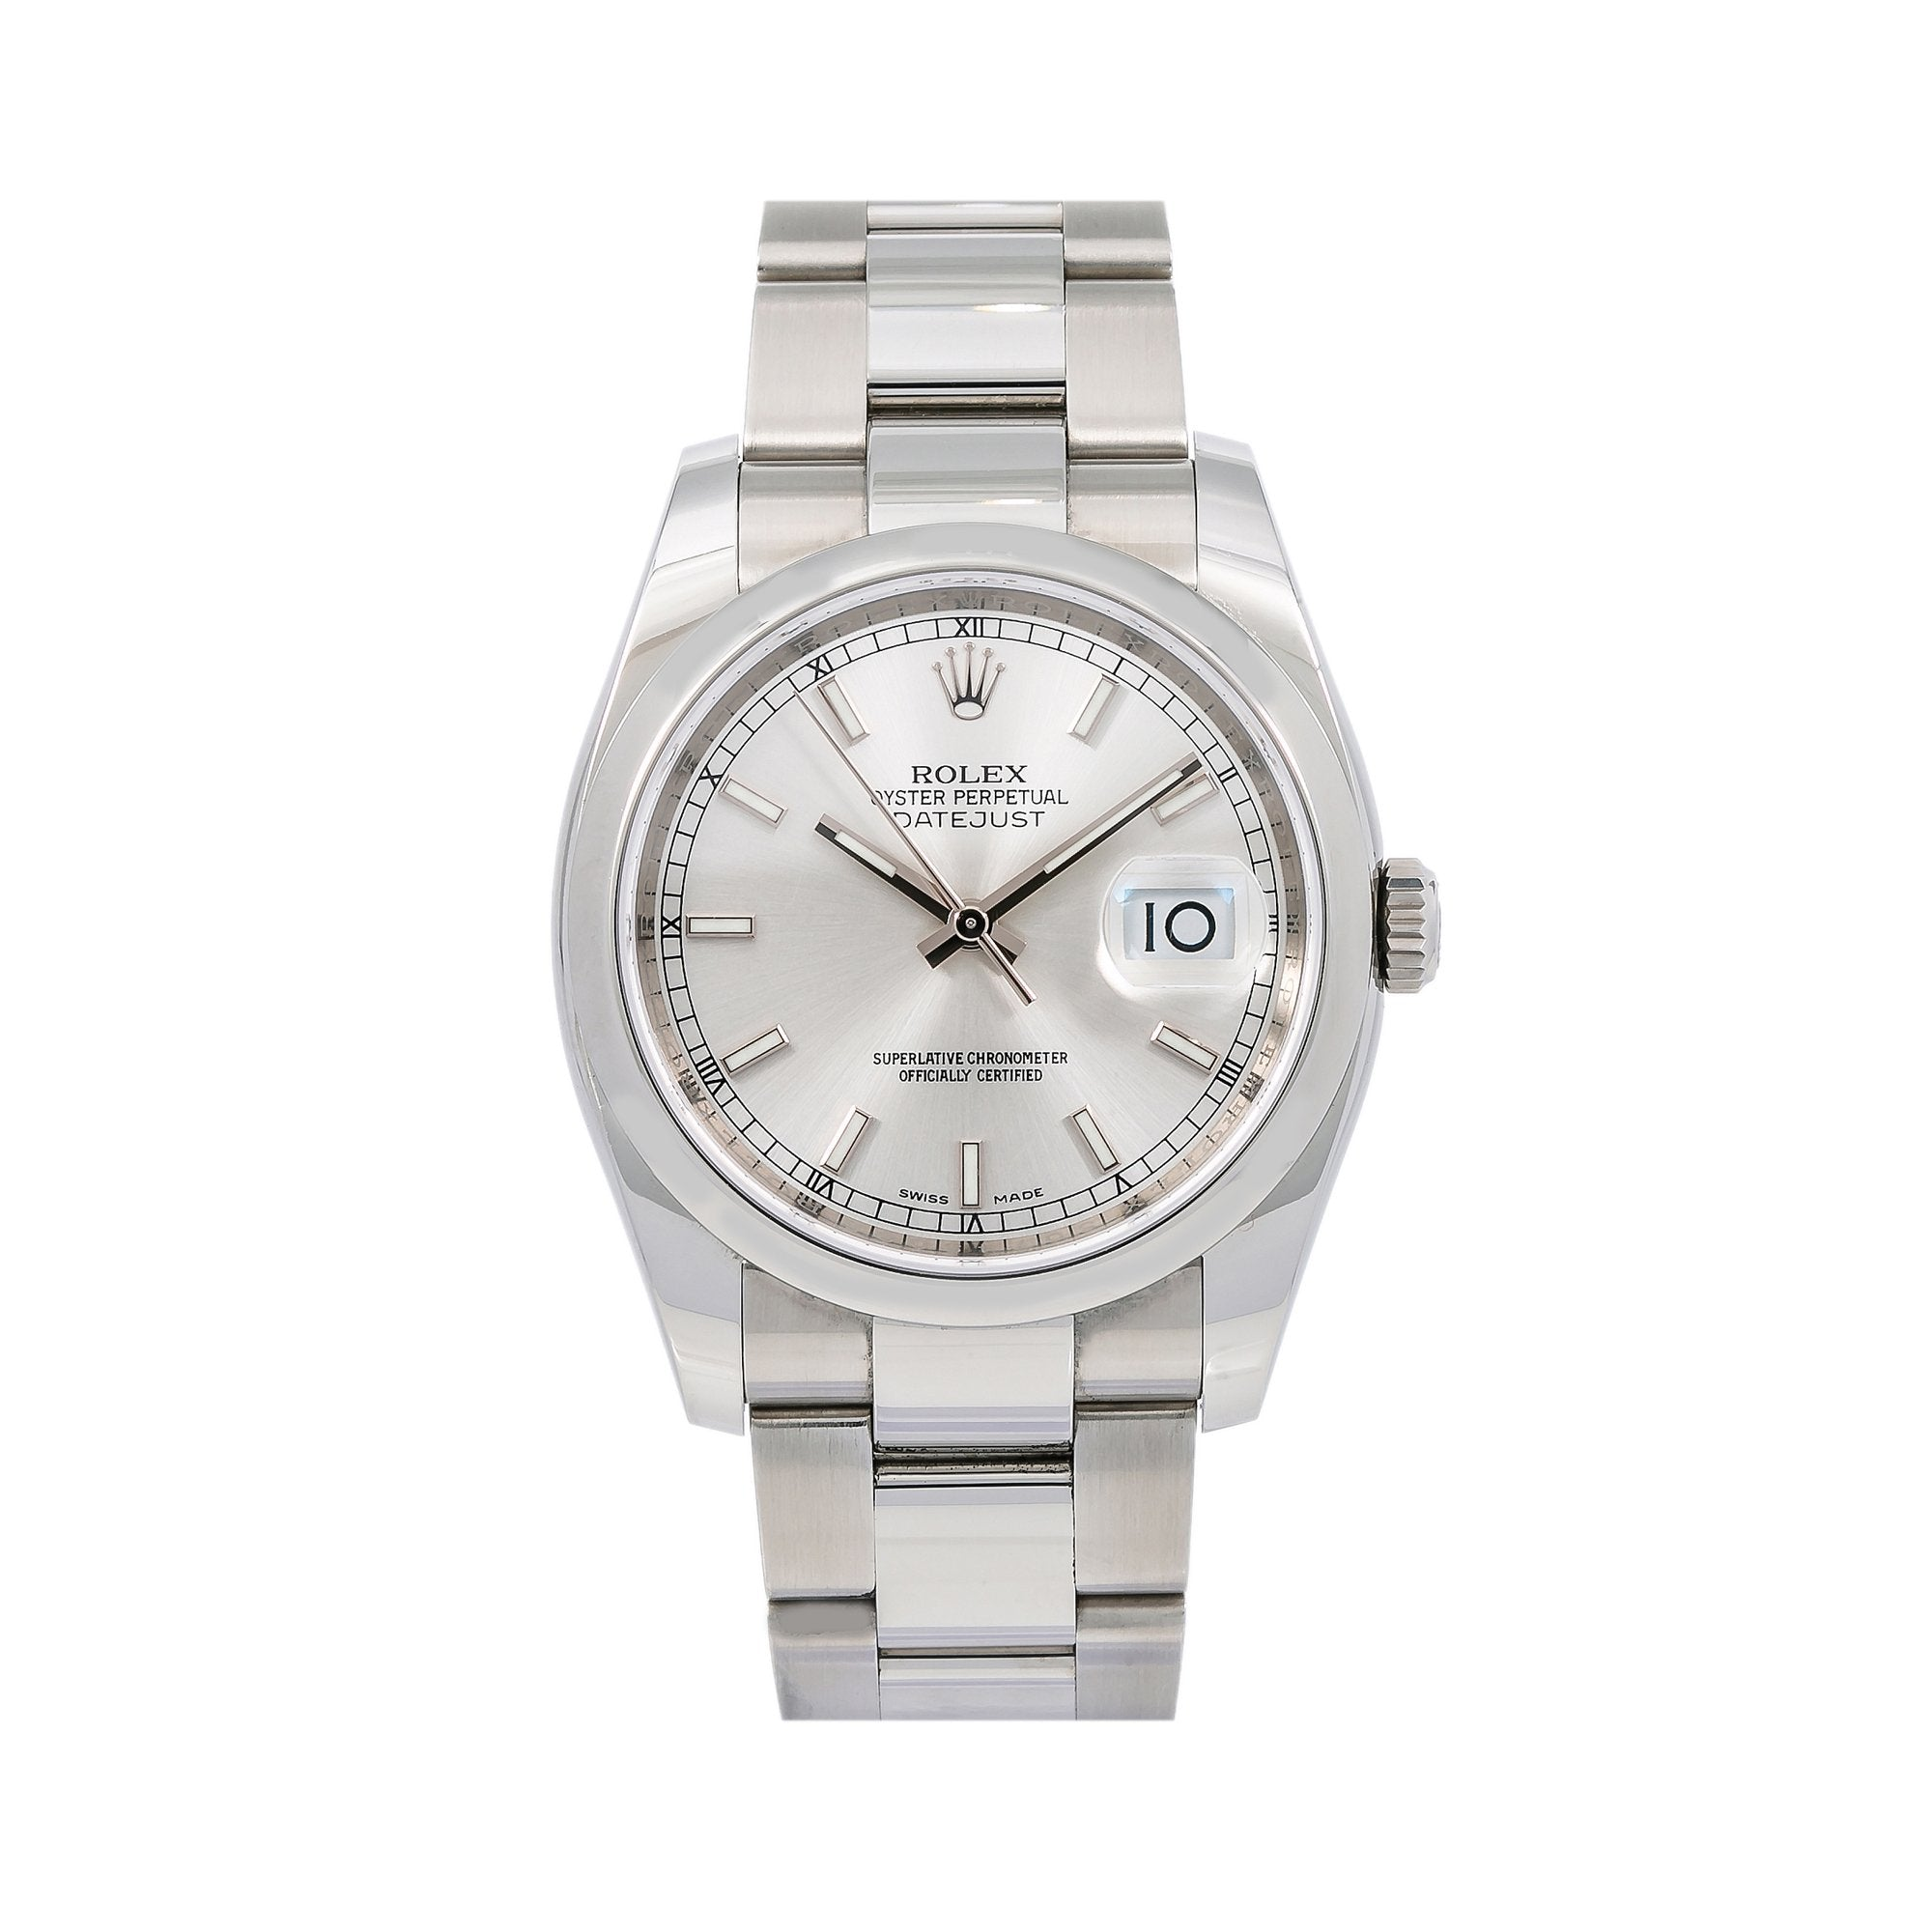 Rolex Datejust 116200 36MM Silver Dial With Stainless Steel Oyster Bracelet